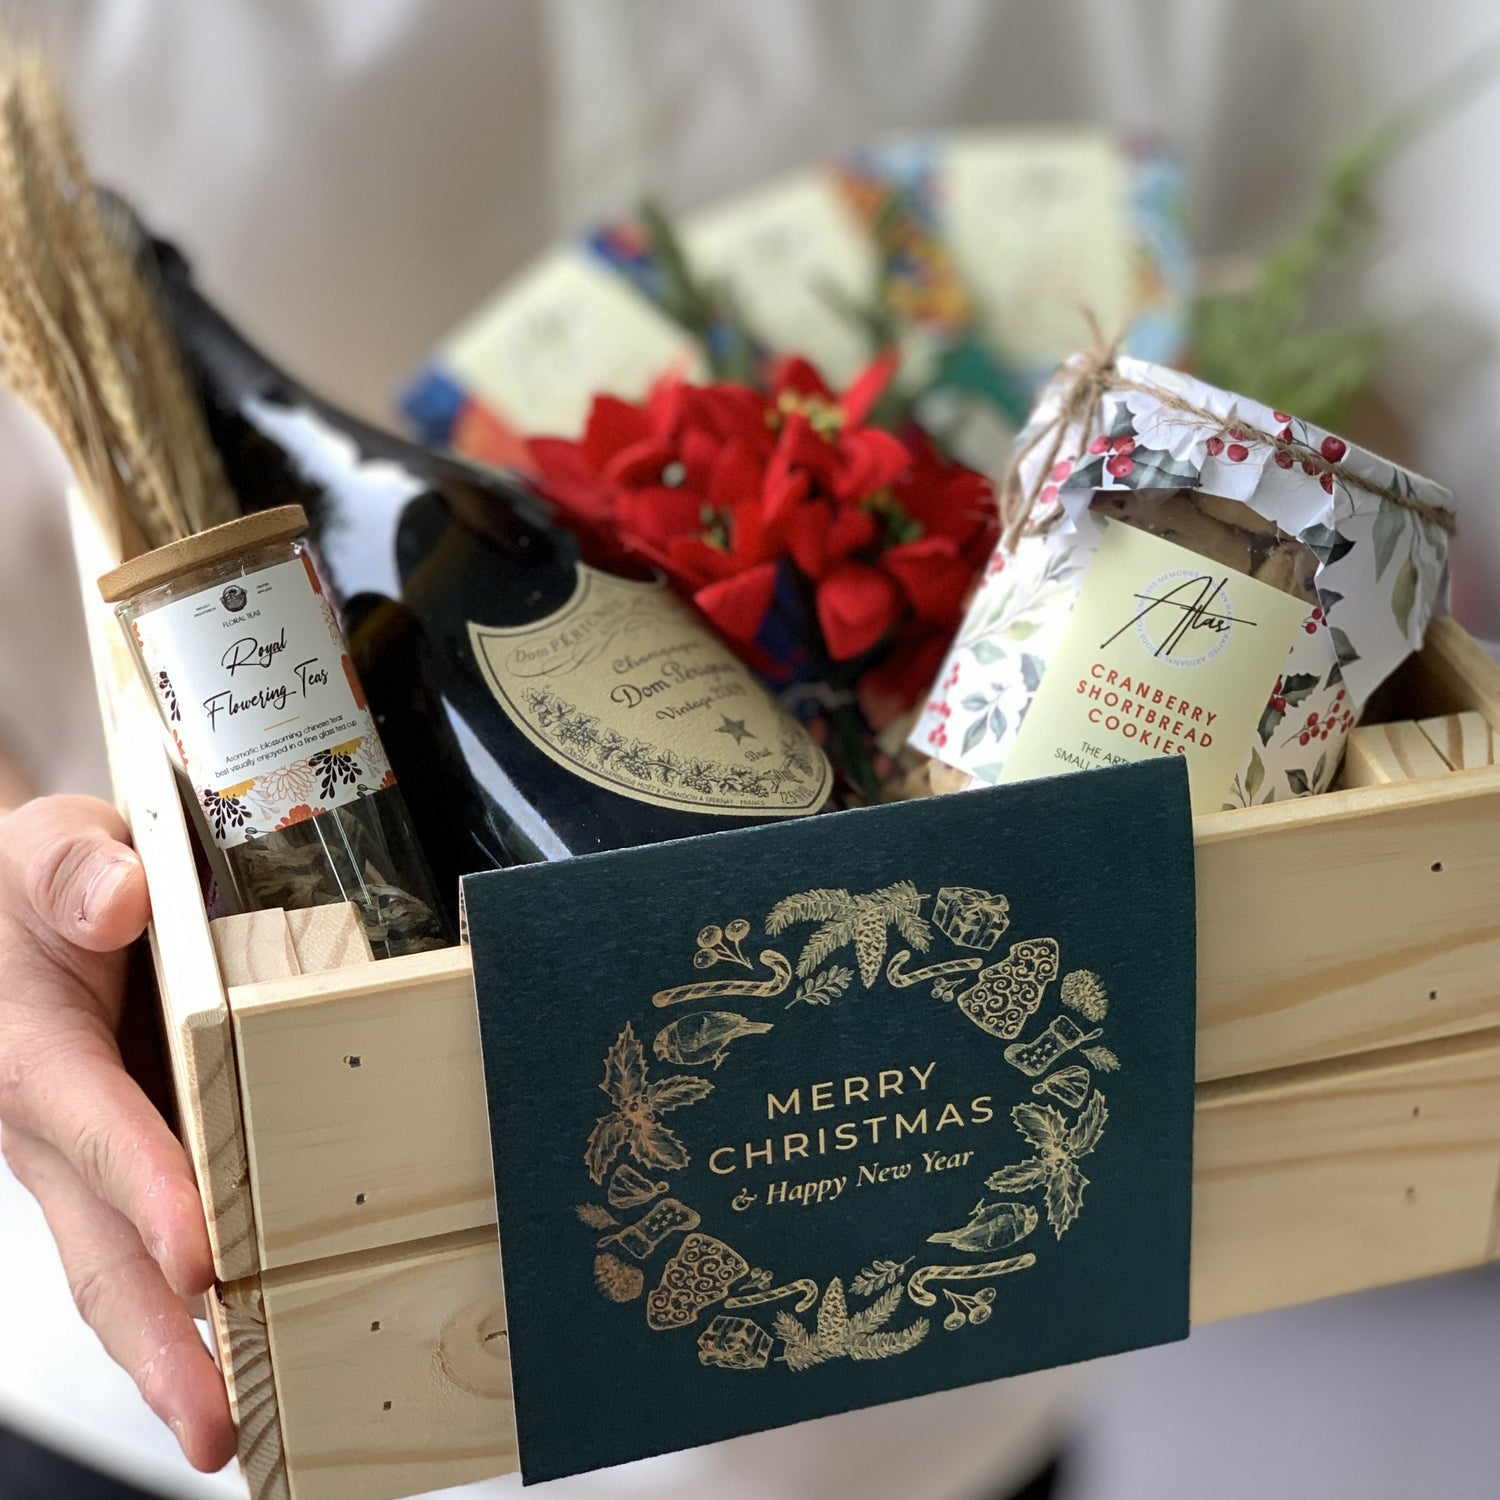 Dom Perignon x Gourmand Holiday Hamper